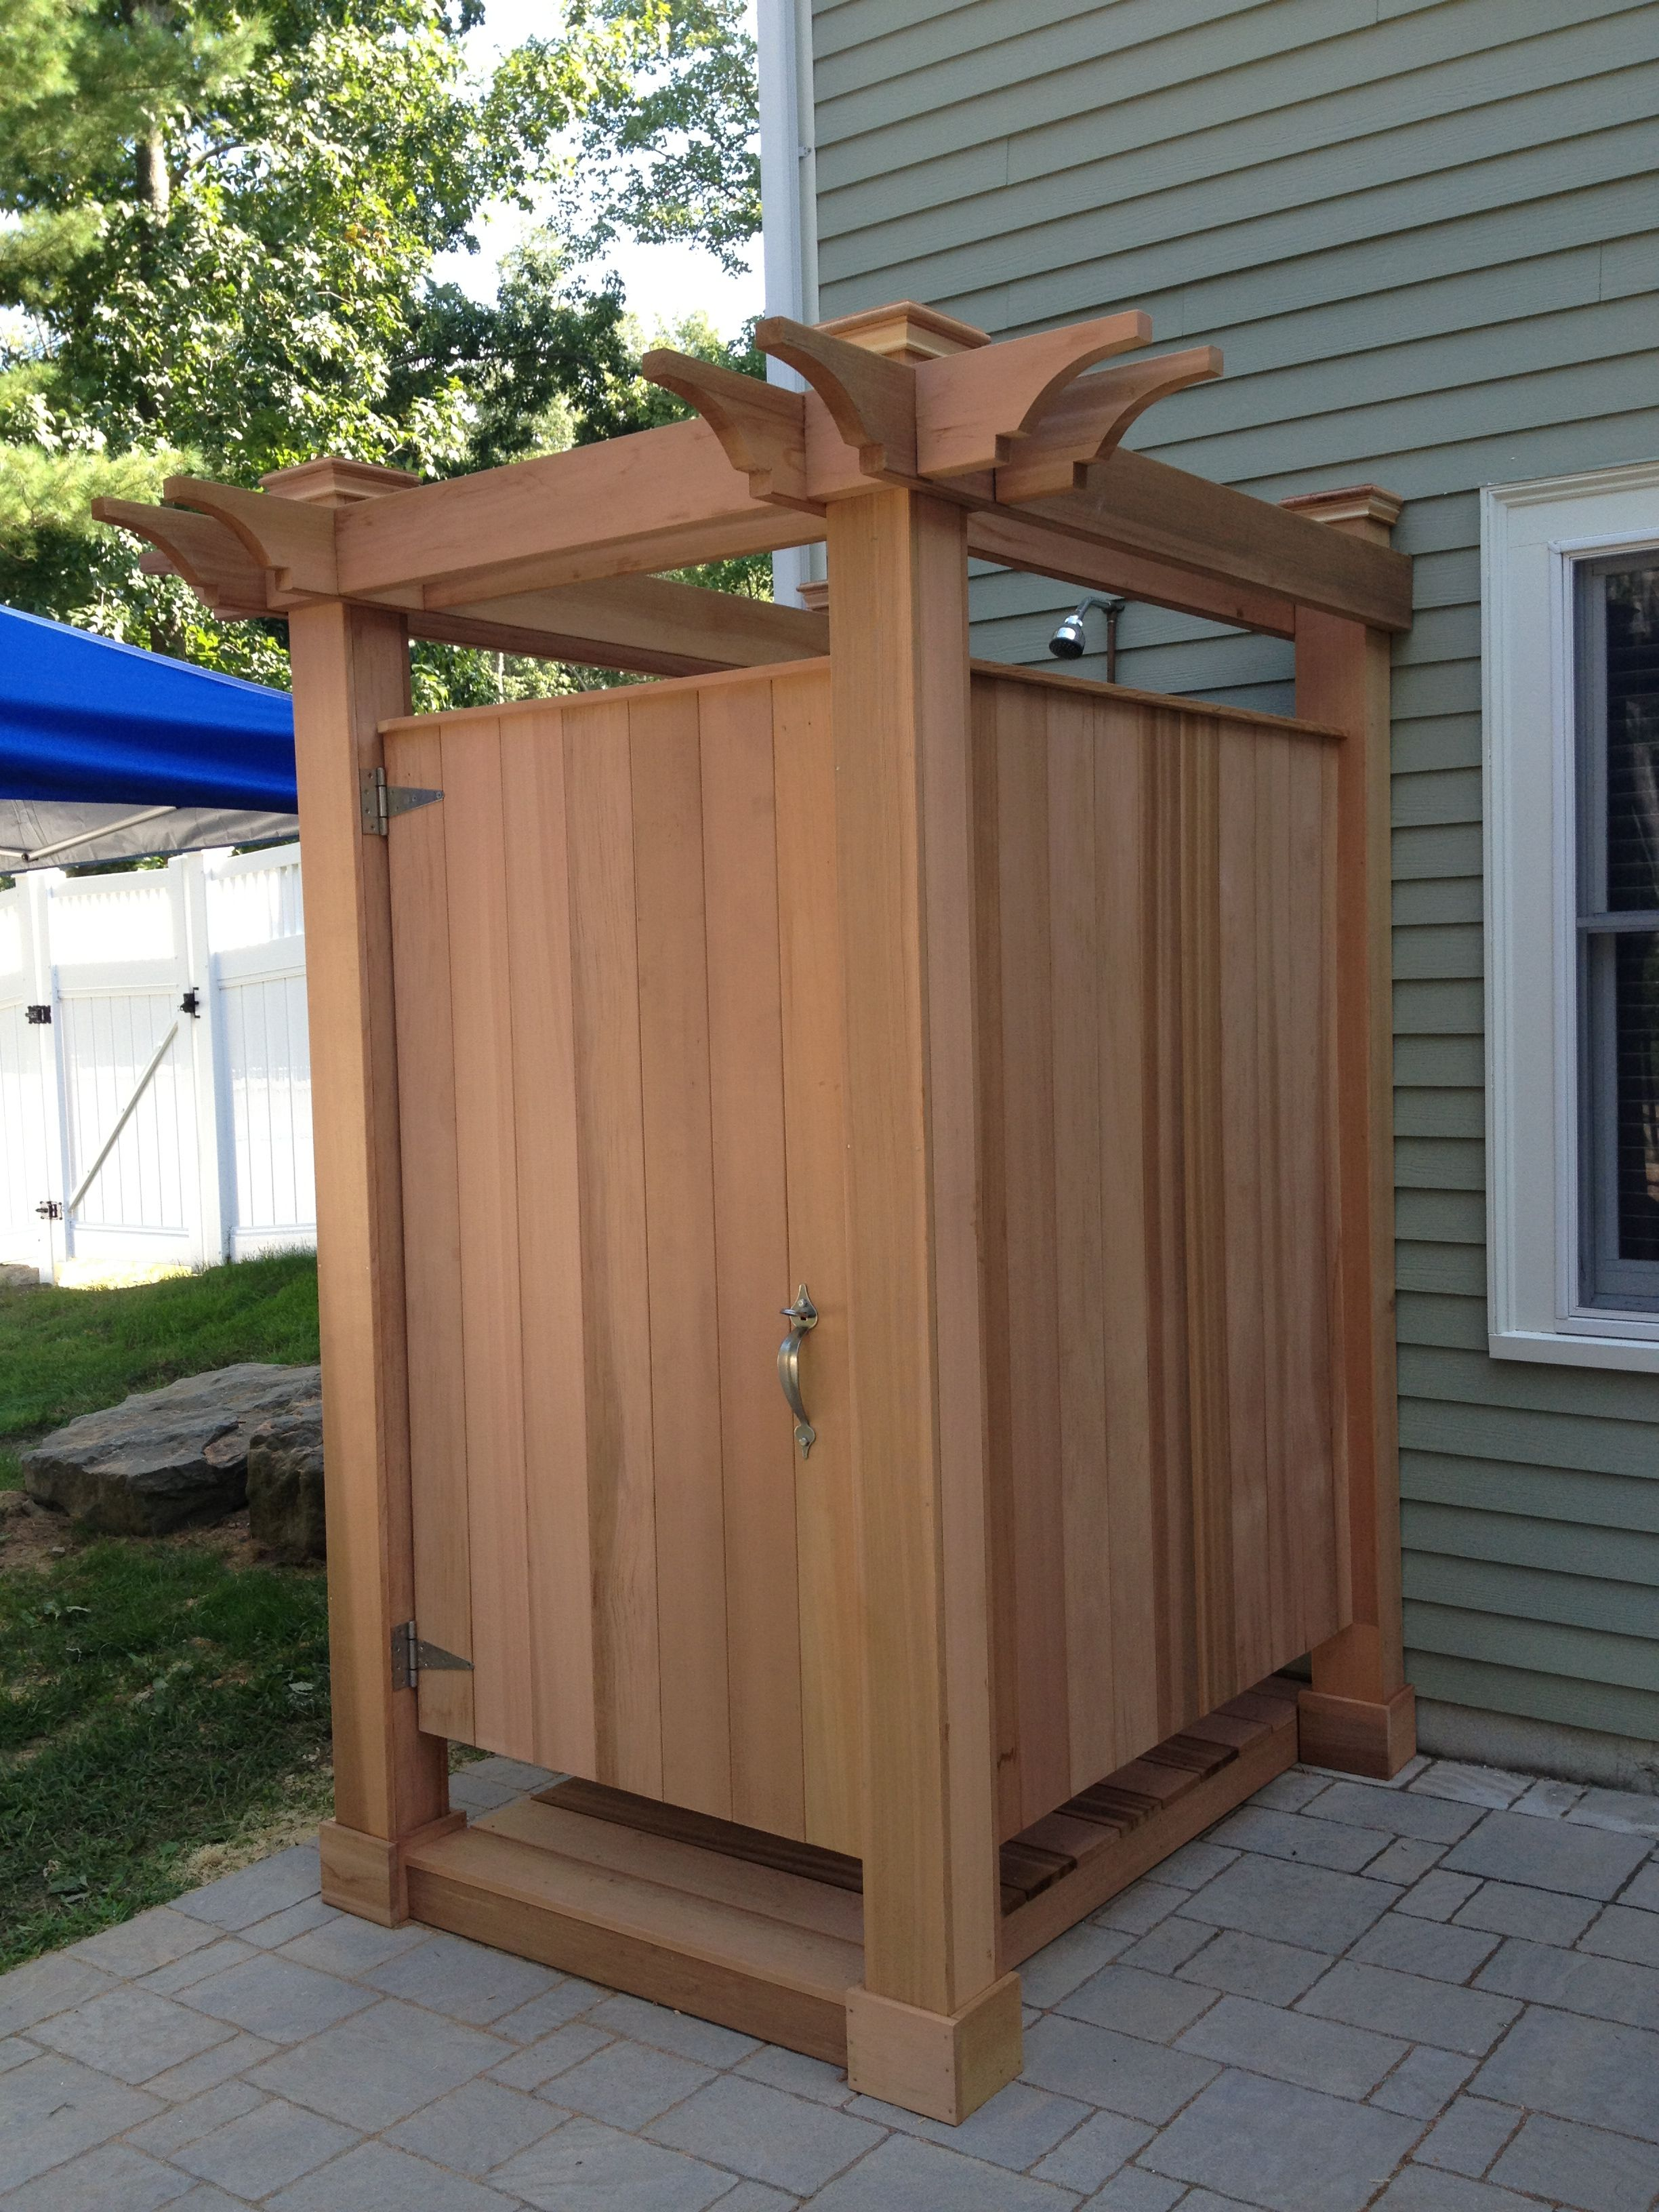 Red Cedar Outdoor Shower By Jkshea Construction With Images